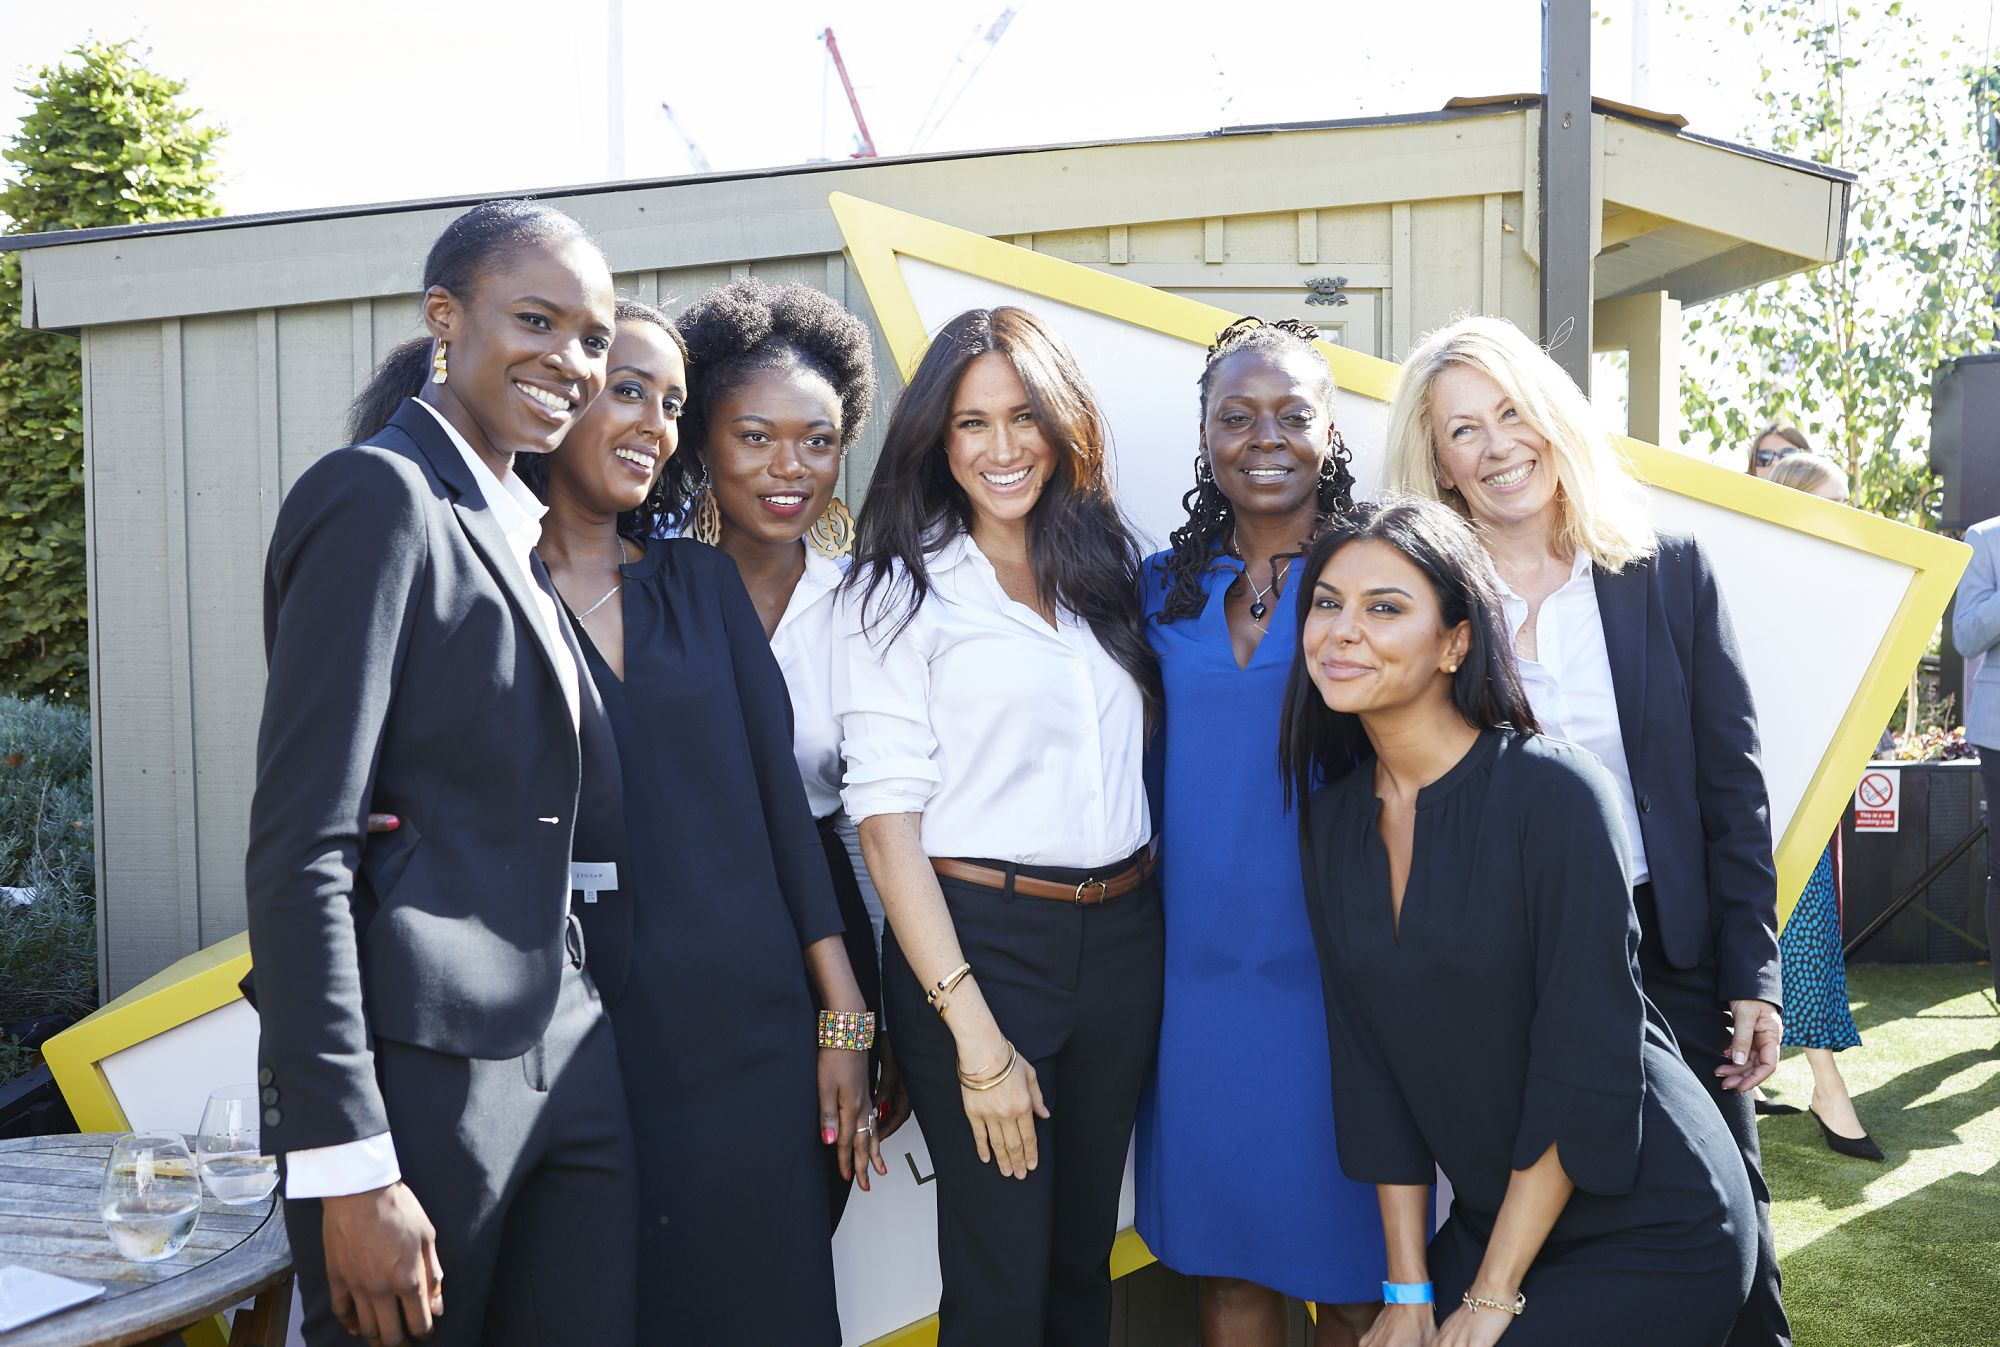 Meghan Markle Has Released A 5-Piece Fashion Line To Benefit Smart Works Charity